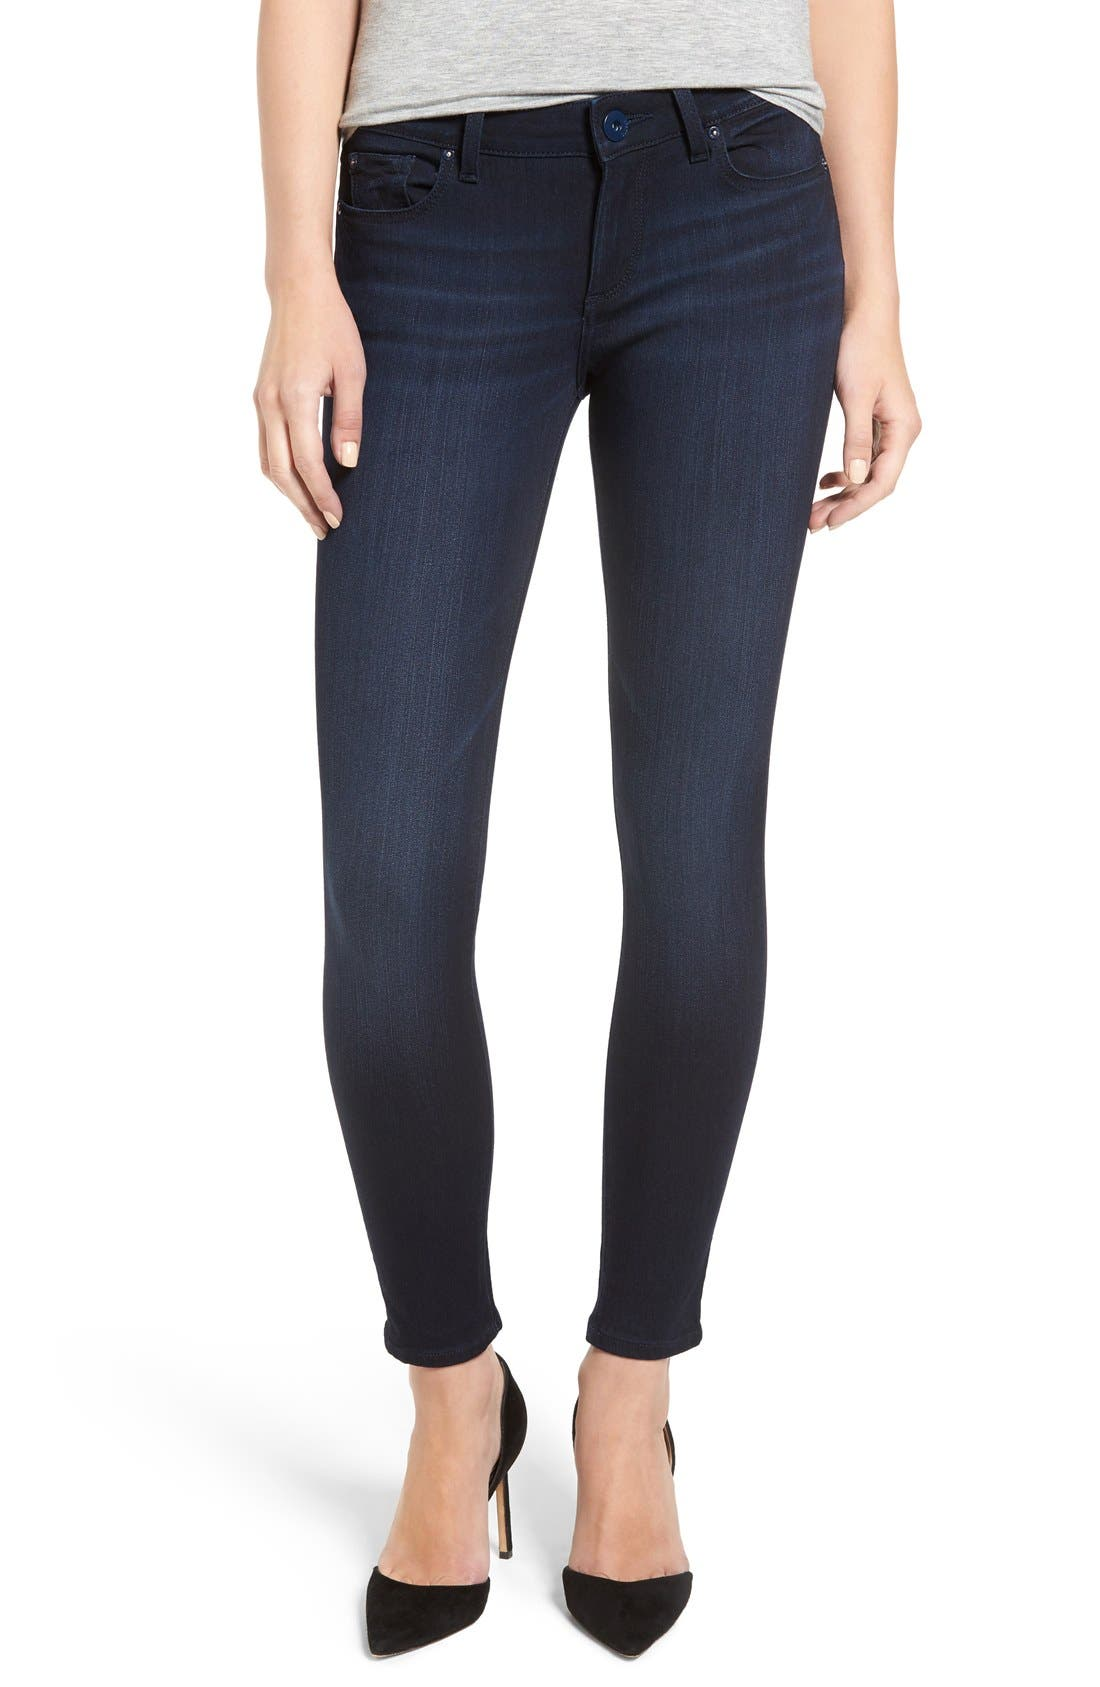 'Emma' Power Legging Jeans,                             Main thumbnail 1, color,                             Token